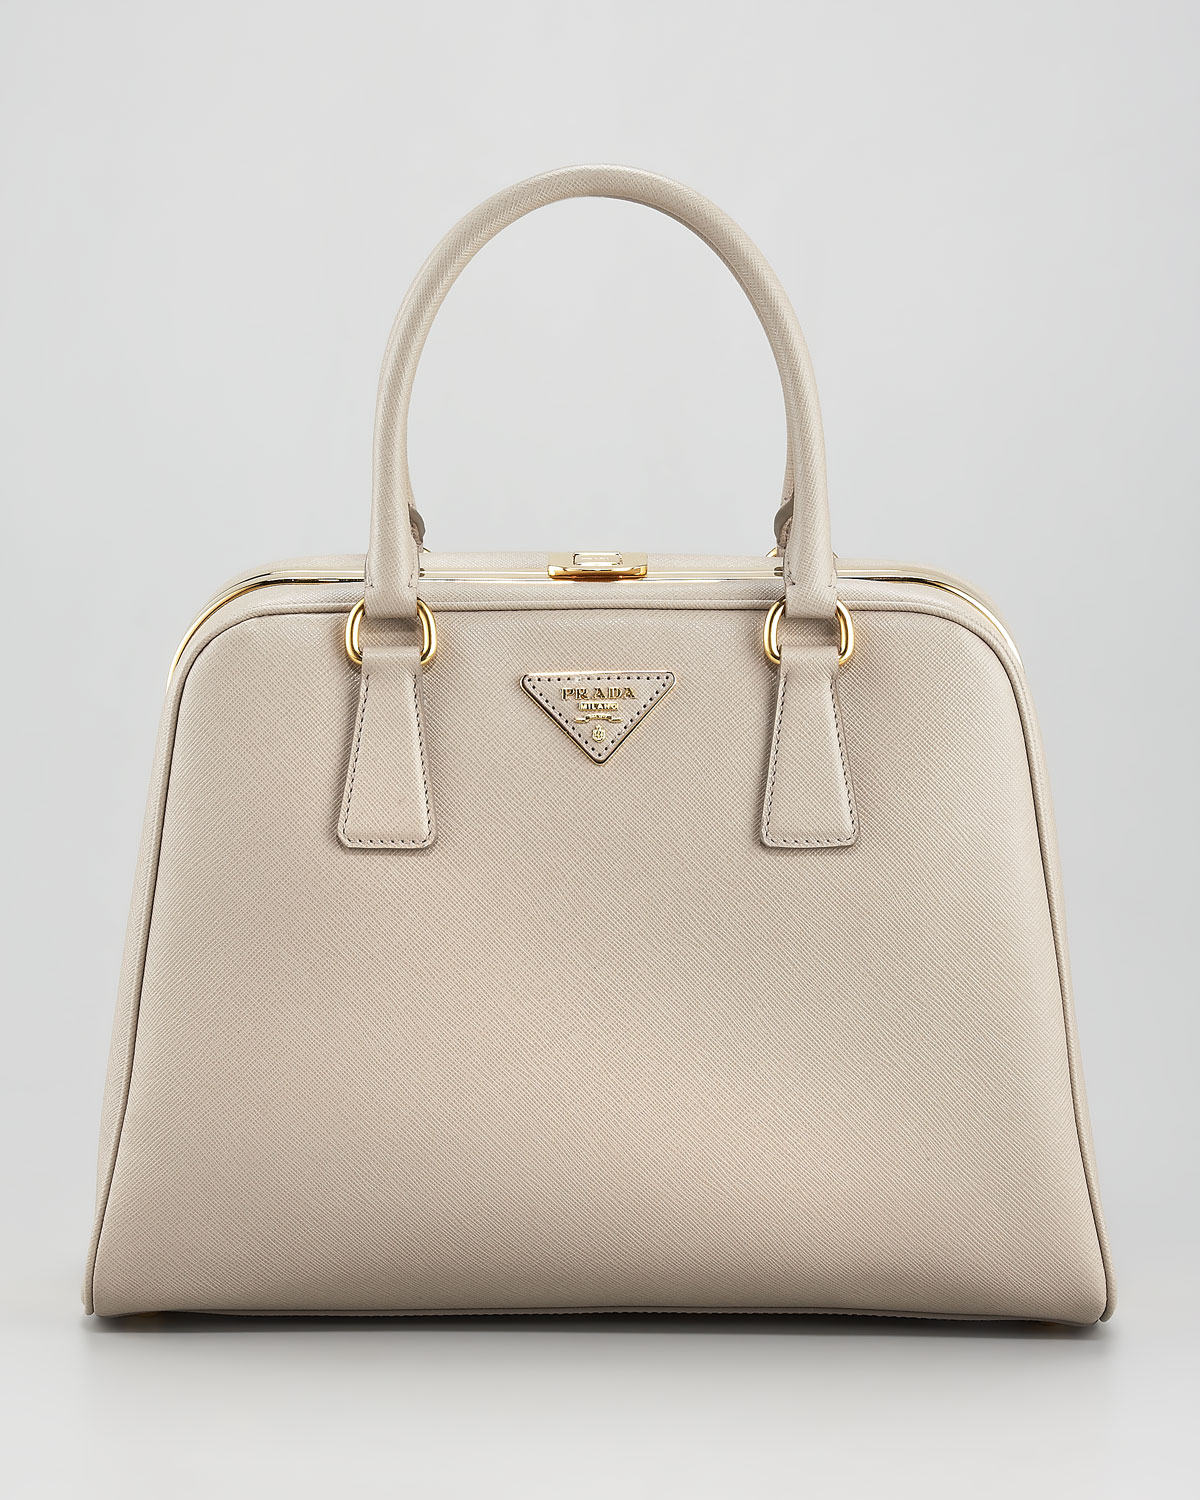 06a6be8ec328 Lyst - Prada Saffiano Lux Pyramid Tote in Natural